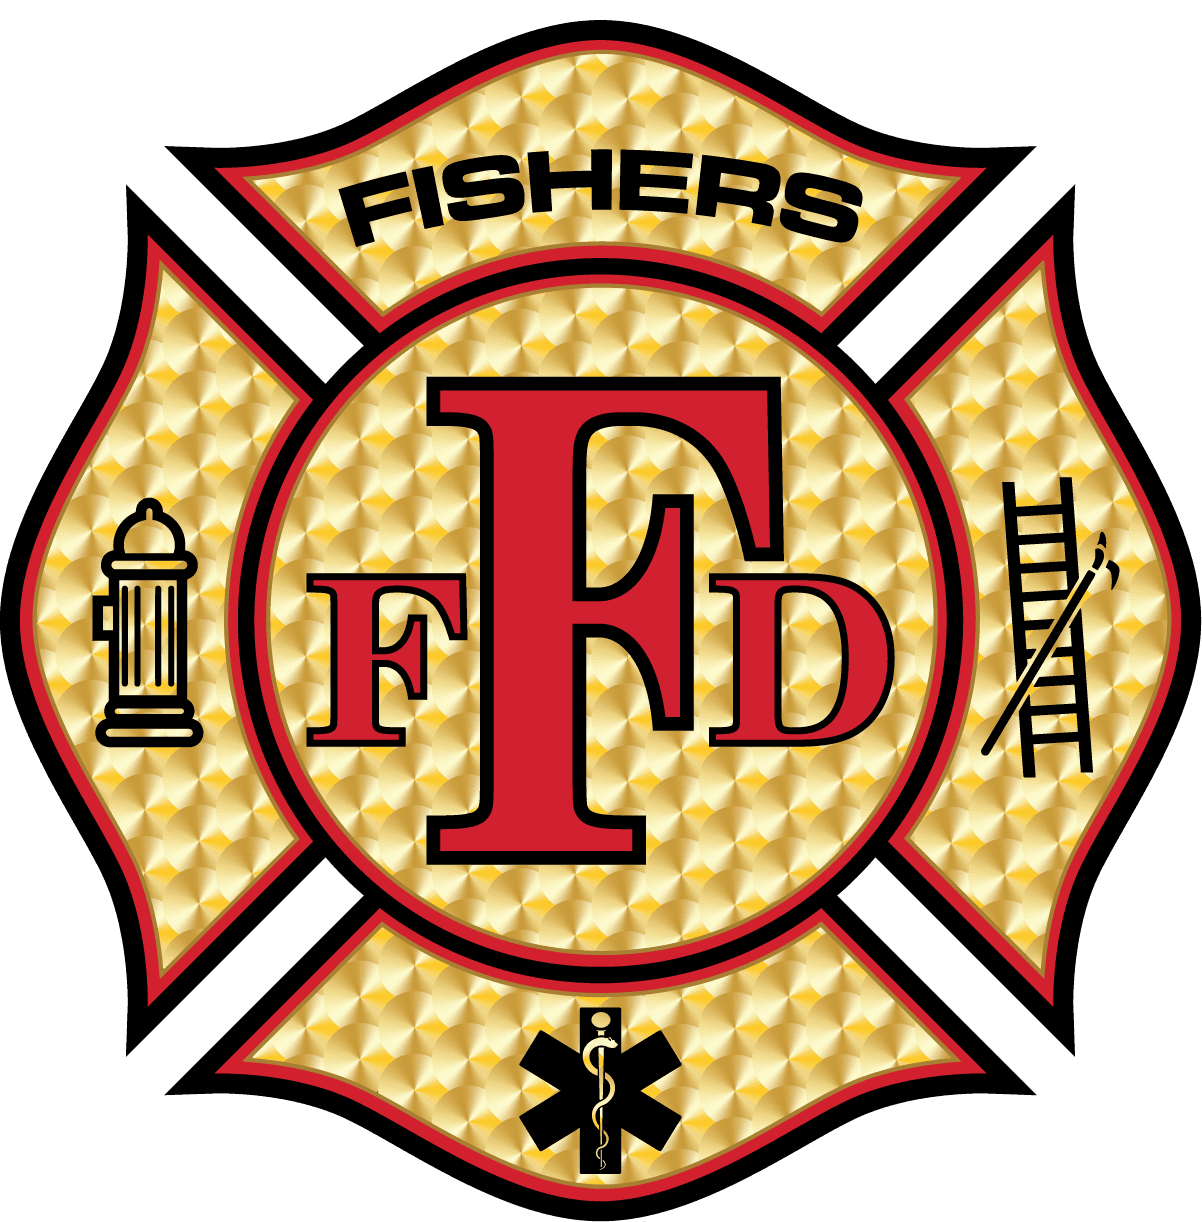 Firefighter clipart water rescue. Fishers fire department in